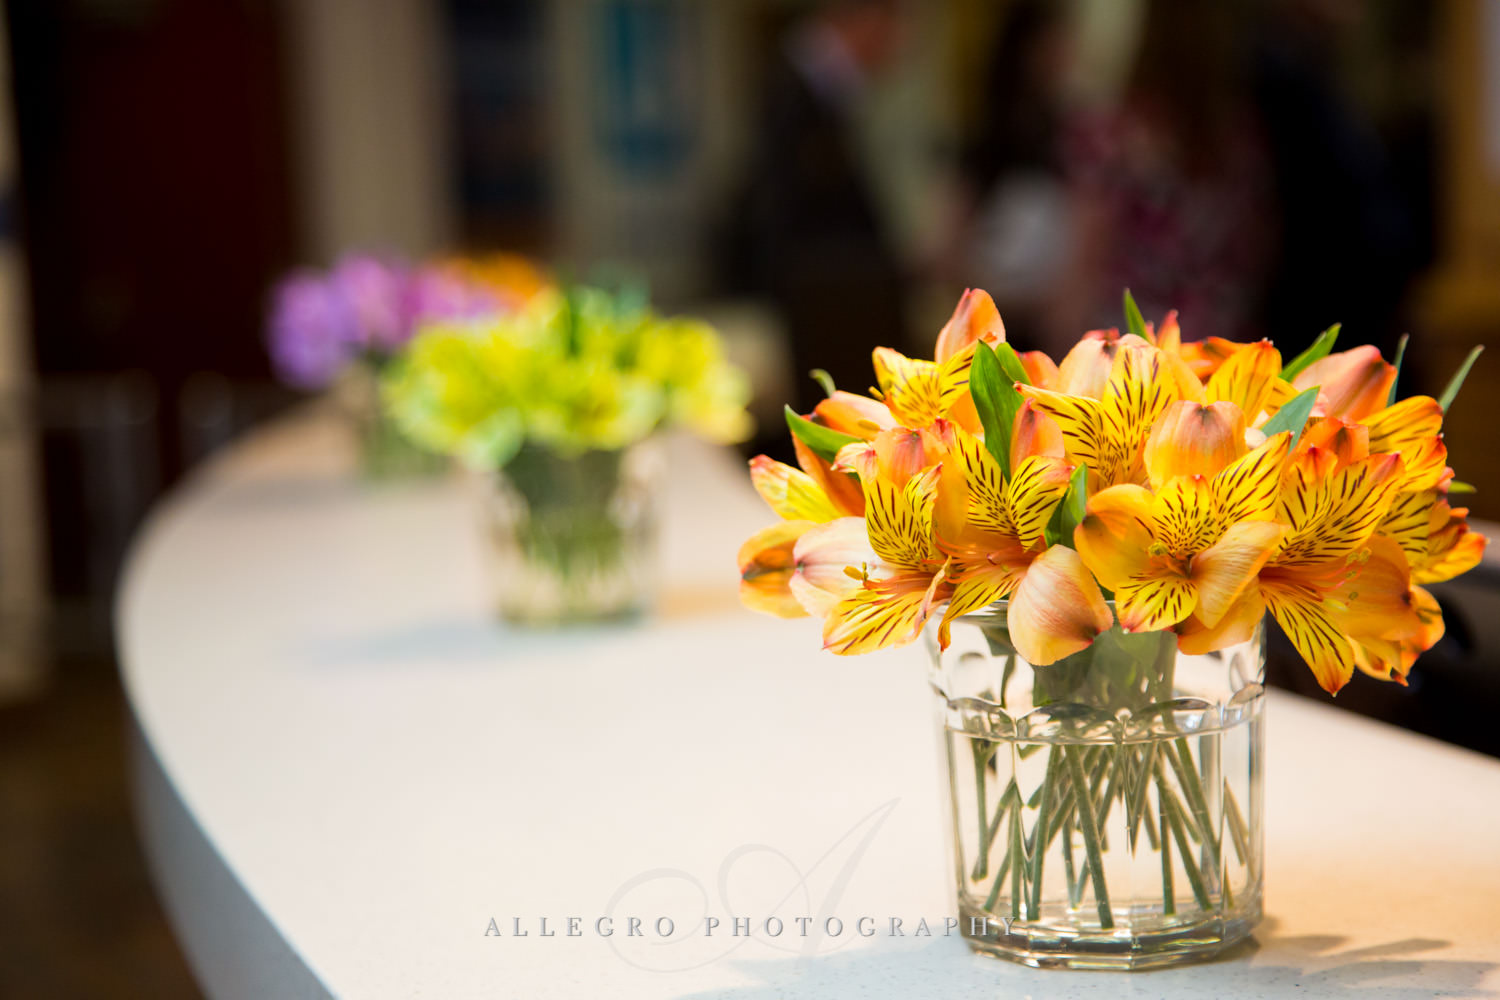 Floral photo by Allegro Photography at the nonprofit JCC@333